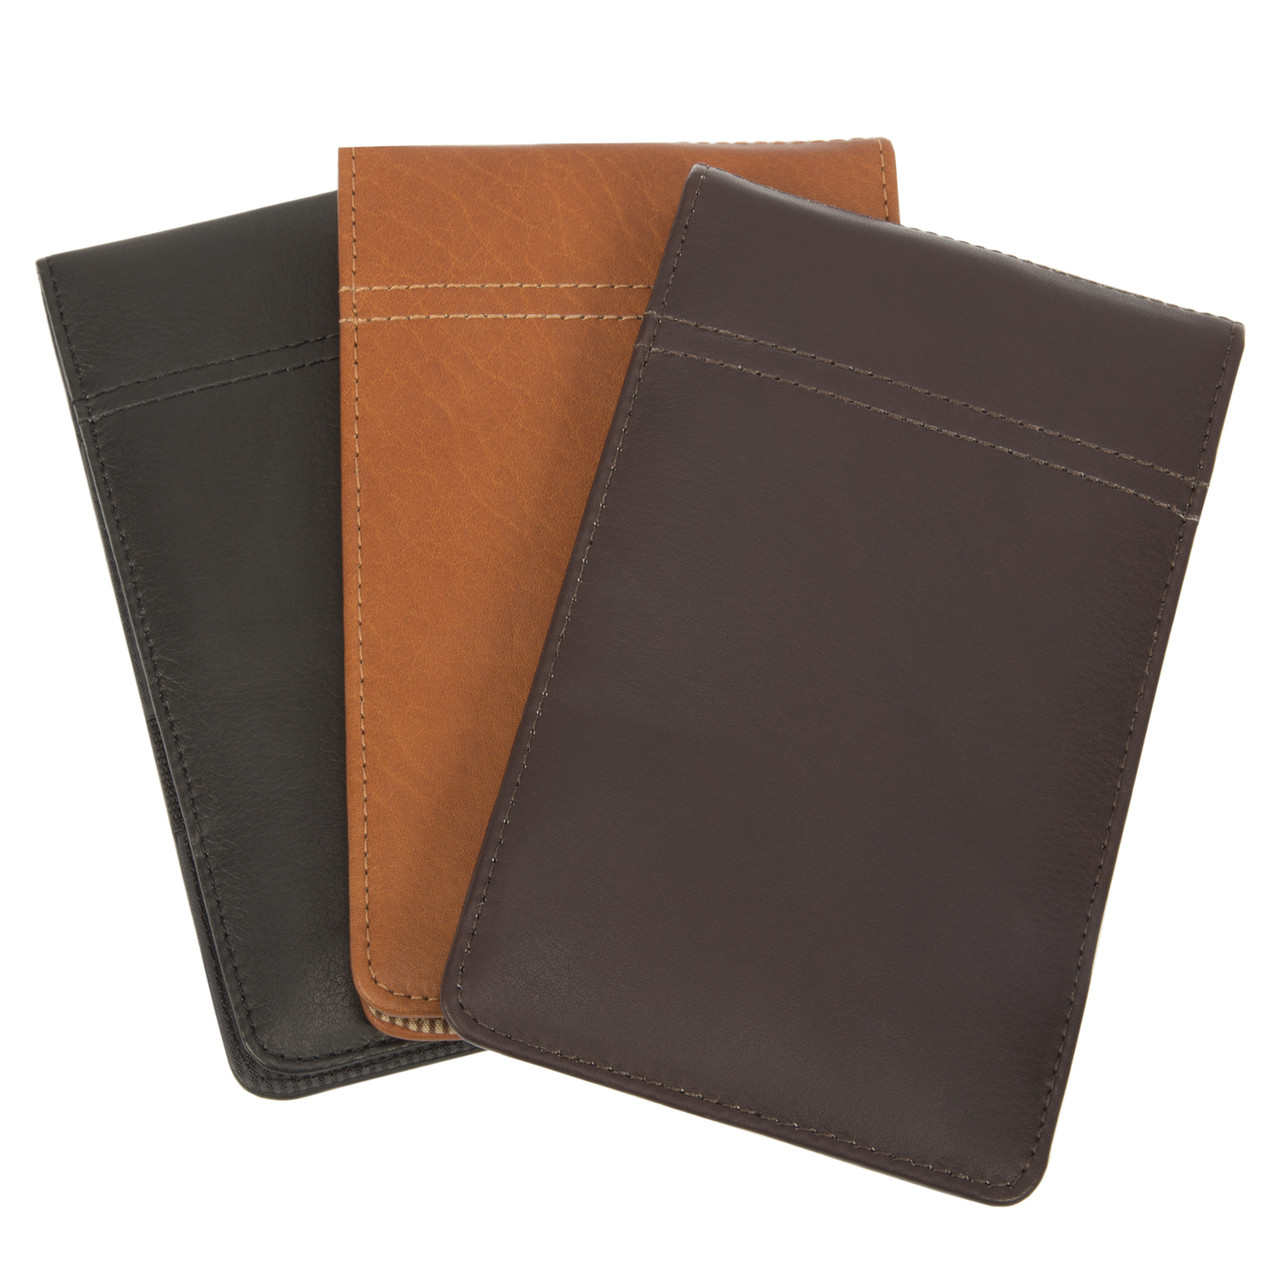 Muiska - Gino - Golf Performance Scorecard Holders come in  three colors: BLACK, SADDLE and BROWN